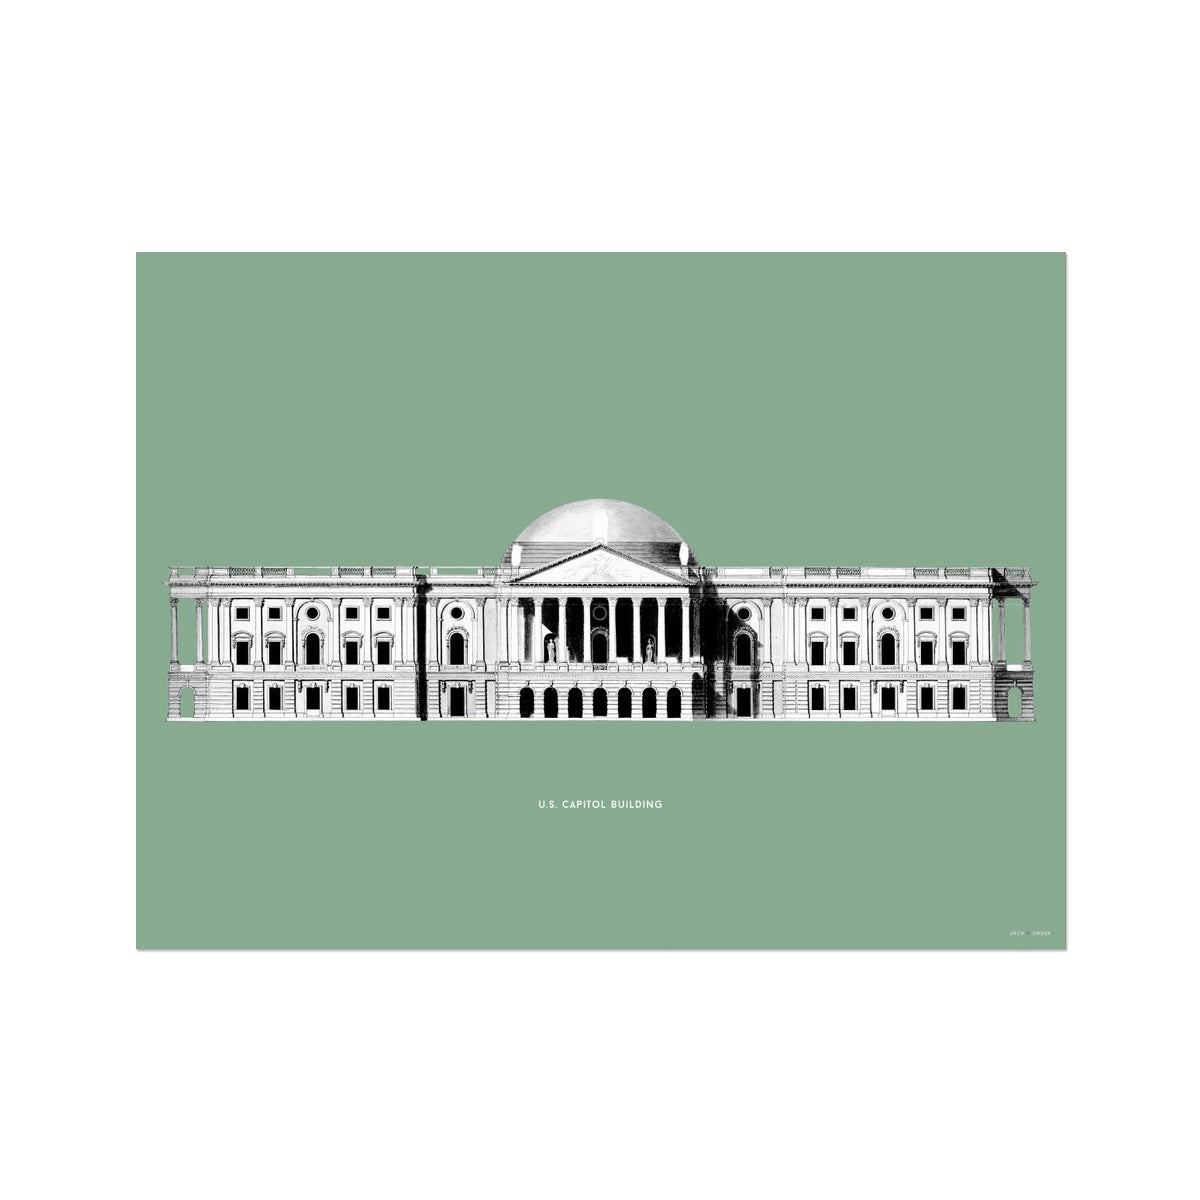 The U.S. Capitol Building - 1793 East Elevation - Green -  Etching Paper Print